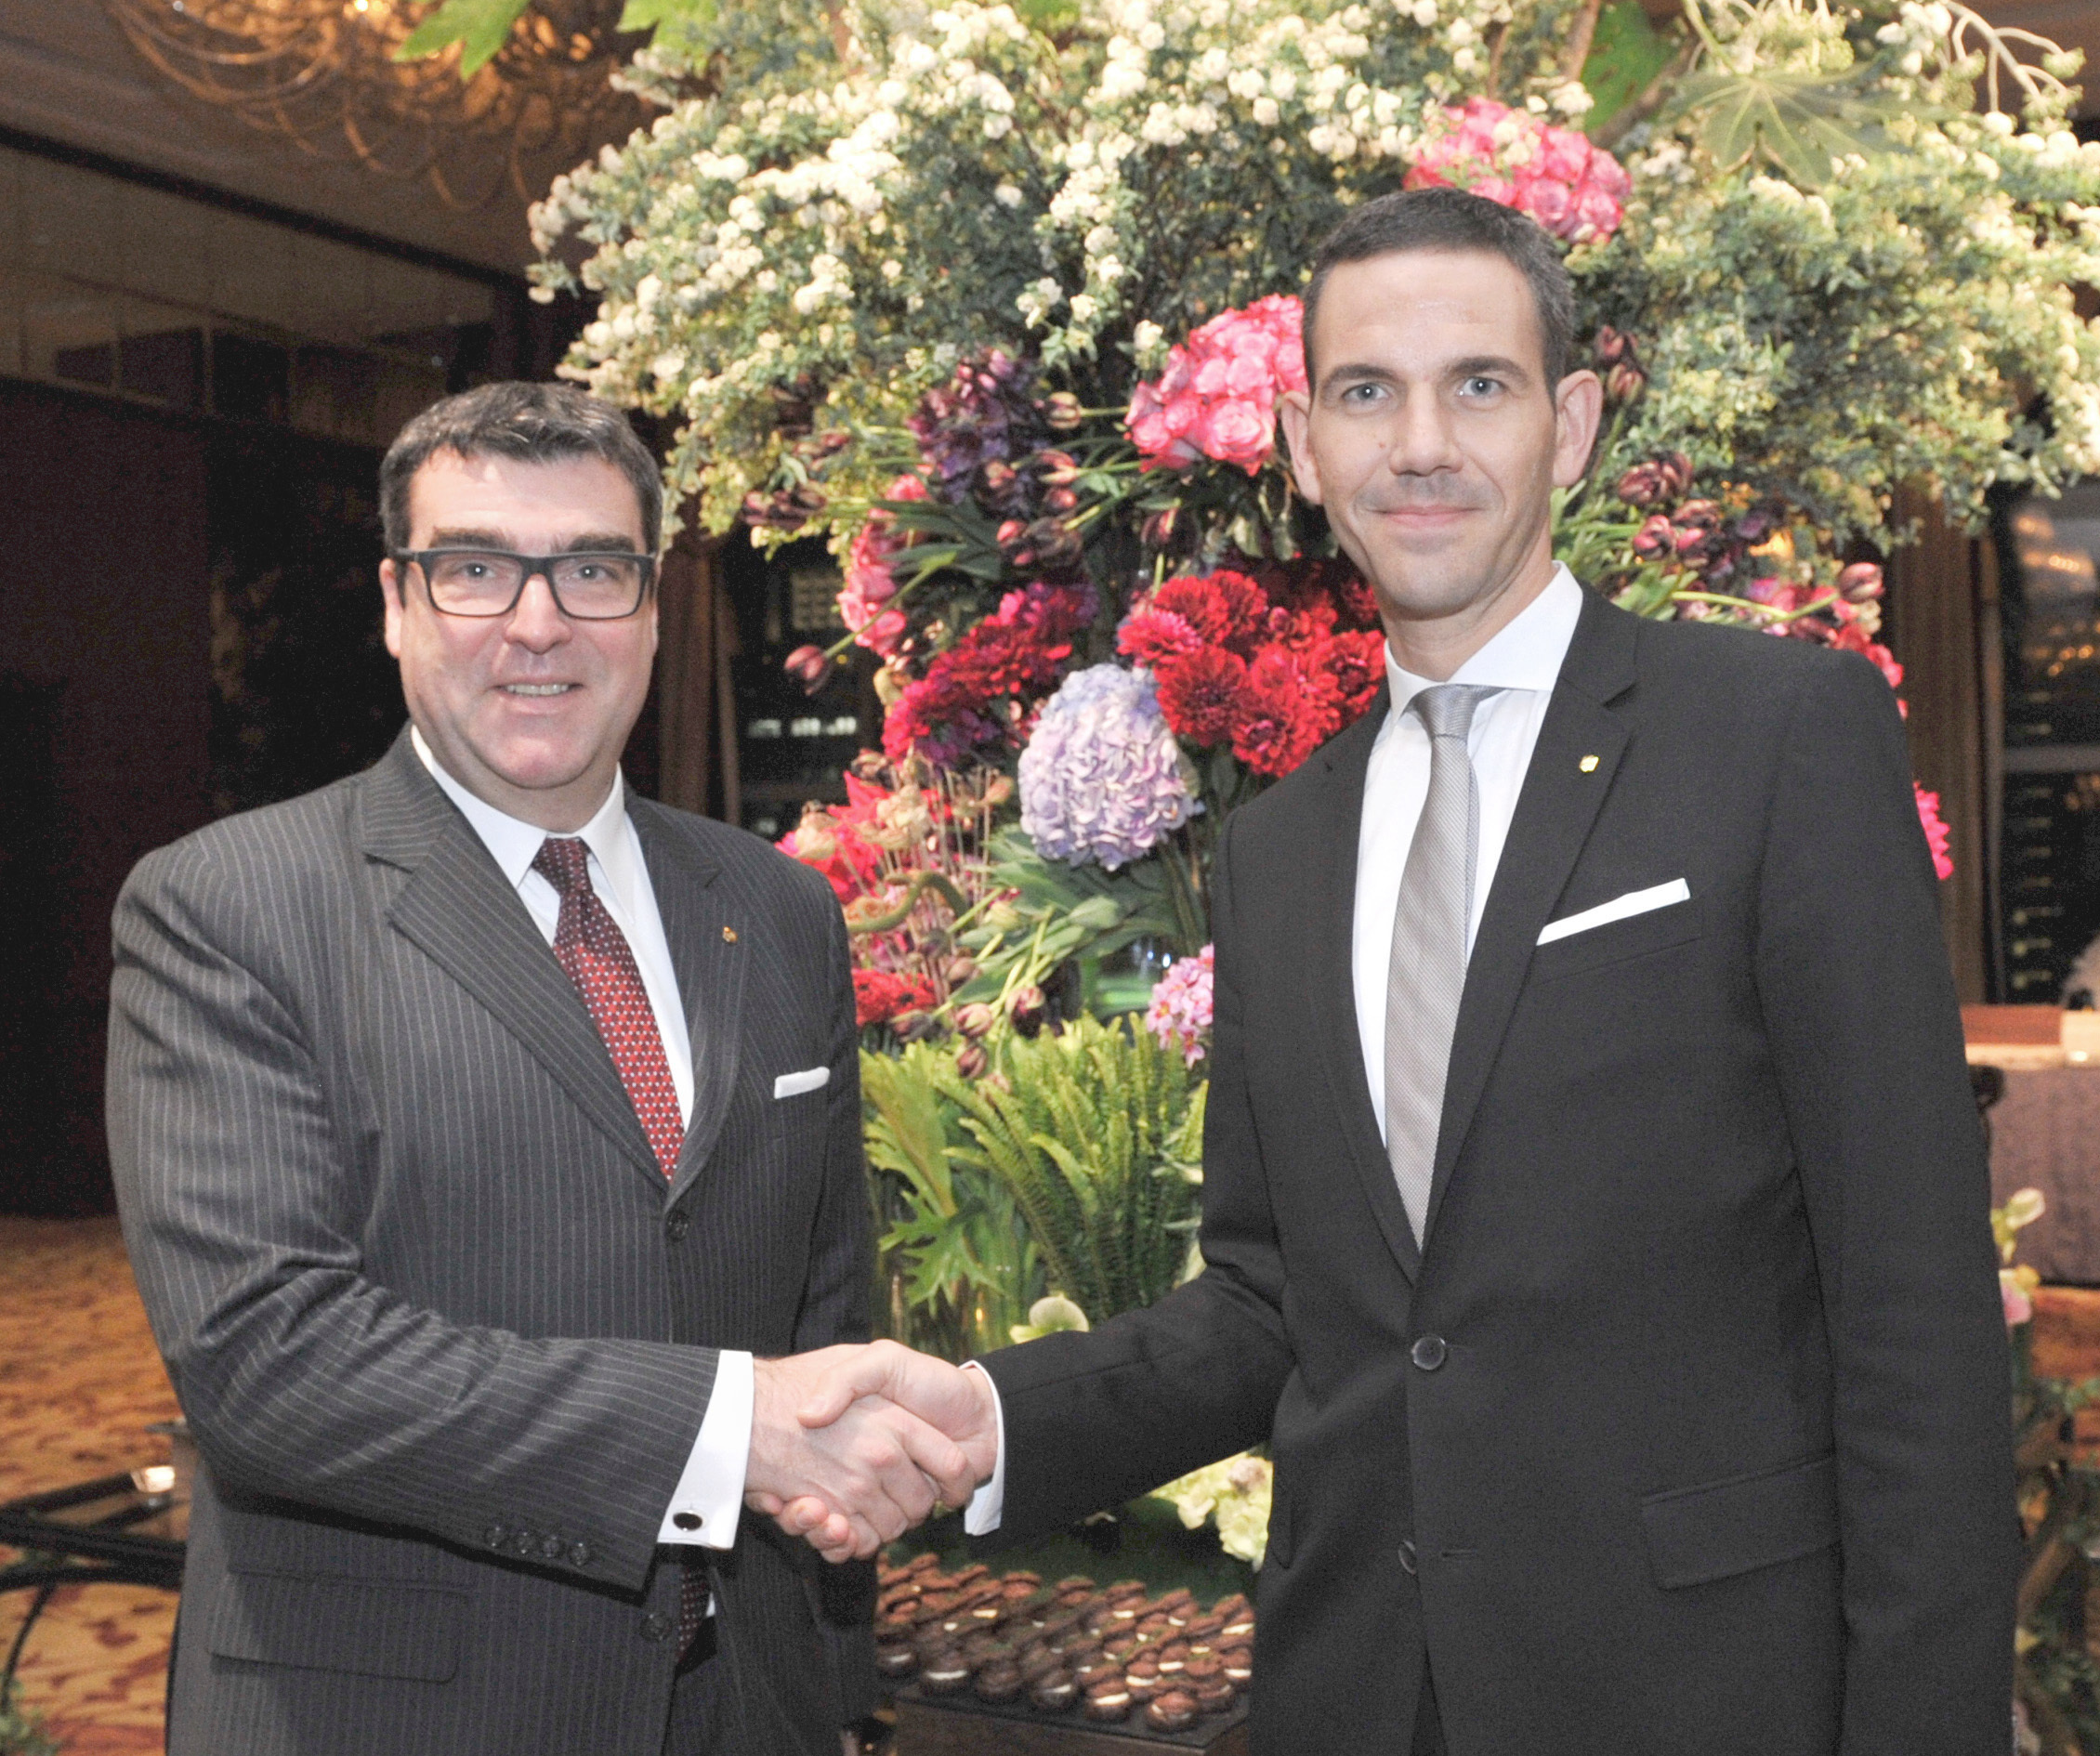 Marcus Bauder (right), the new general manager of the Shangri-La Hotel, Tokyo, shakes hands with outgoing GM Jens Moesker, who is being promoted to area manager and general manager of the Shangri-La Hotel, Toronto, during a reception at the hotel in Tokyo on Feb. 4. | YOSHIAKI MIURA